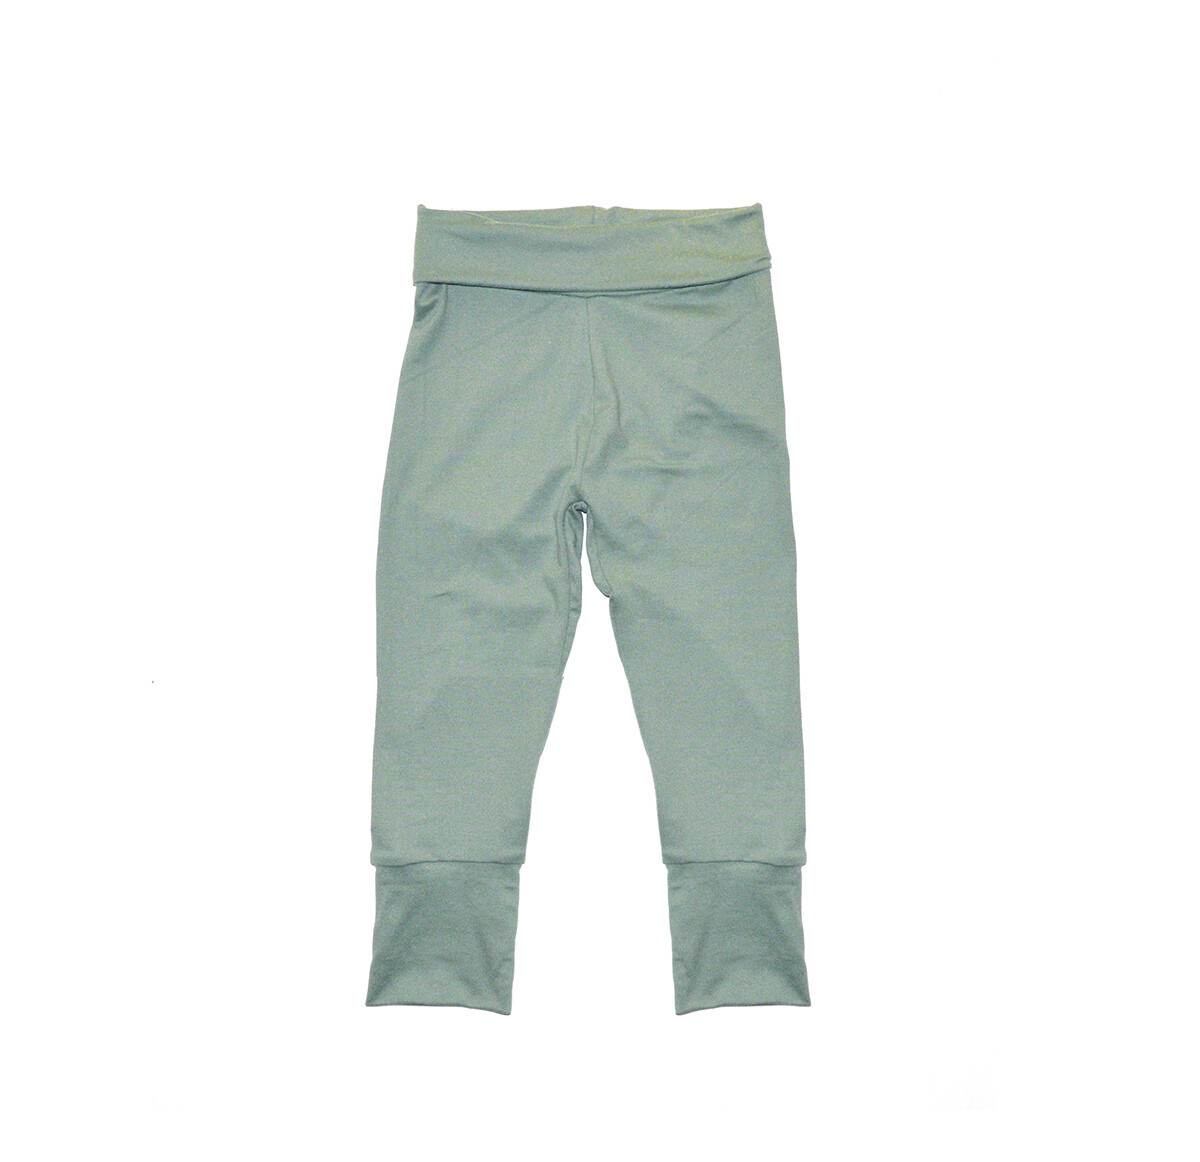 Little Sprout™ One-Size Grow with Me Pants in Sage - Preorder